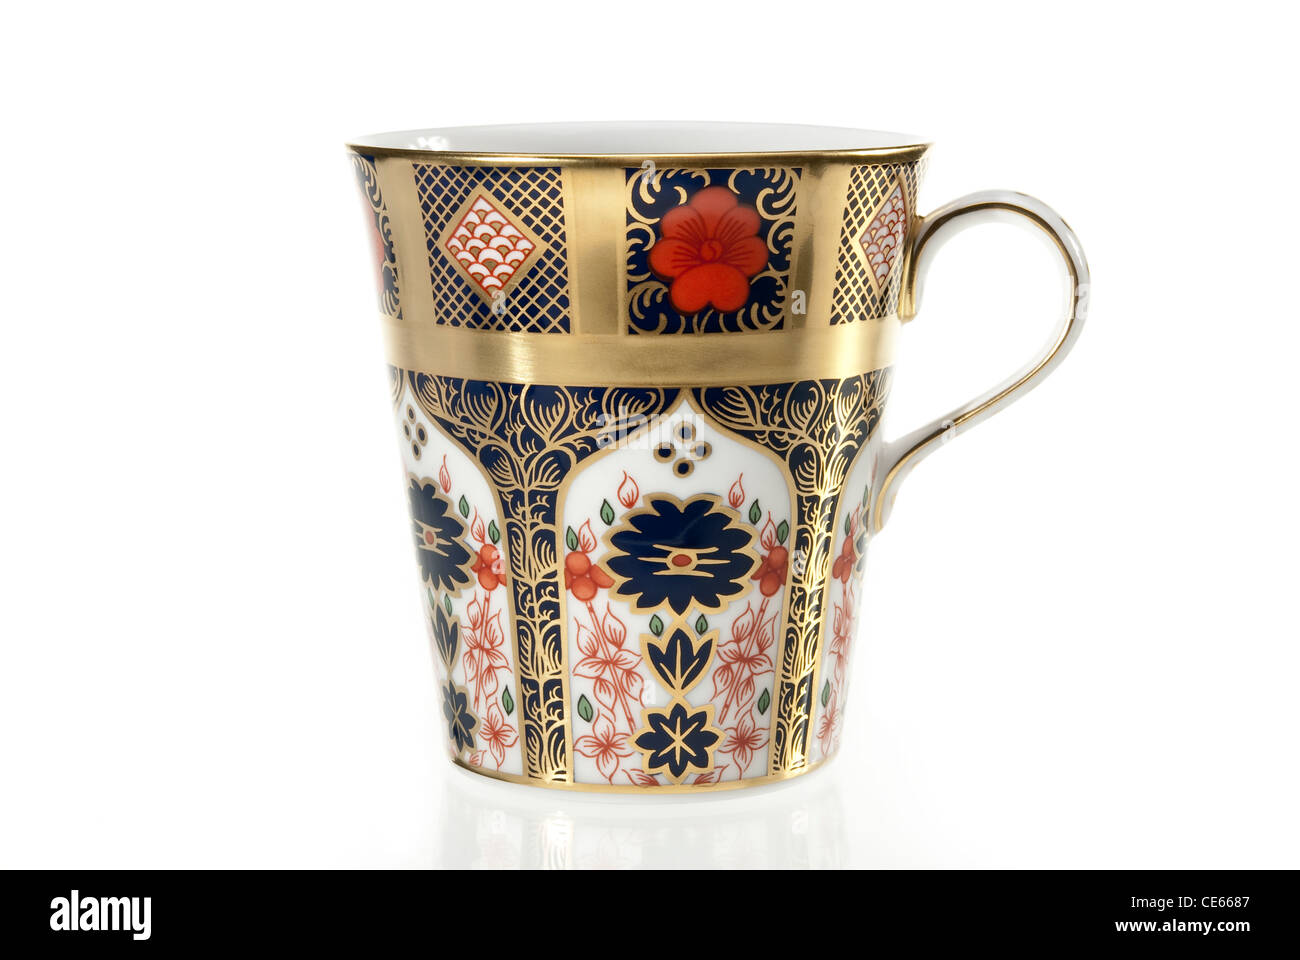 Fine bone china luxurious tea cup over white background - Stock Image